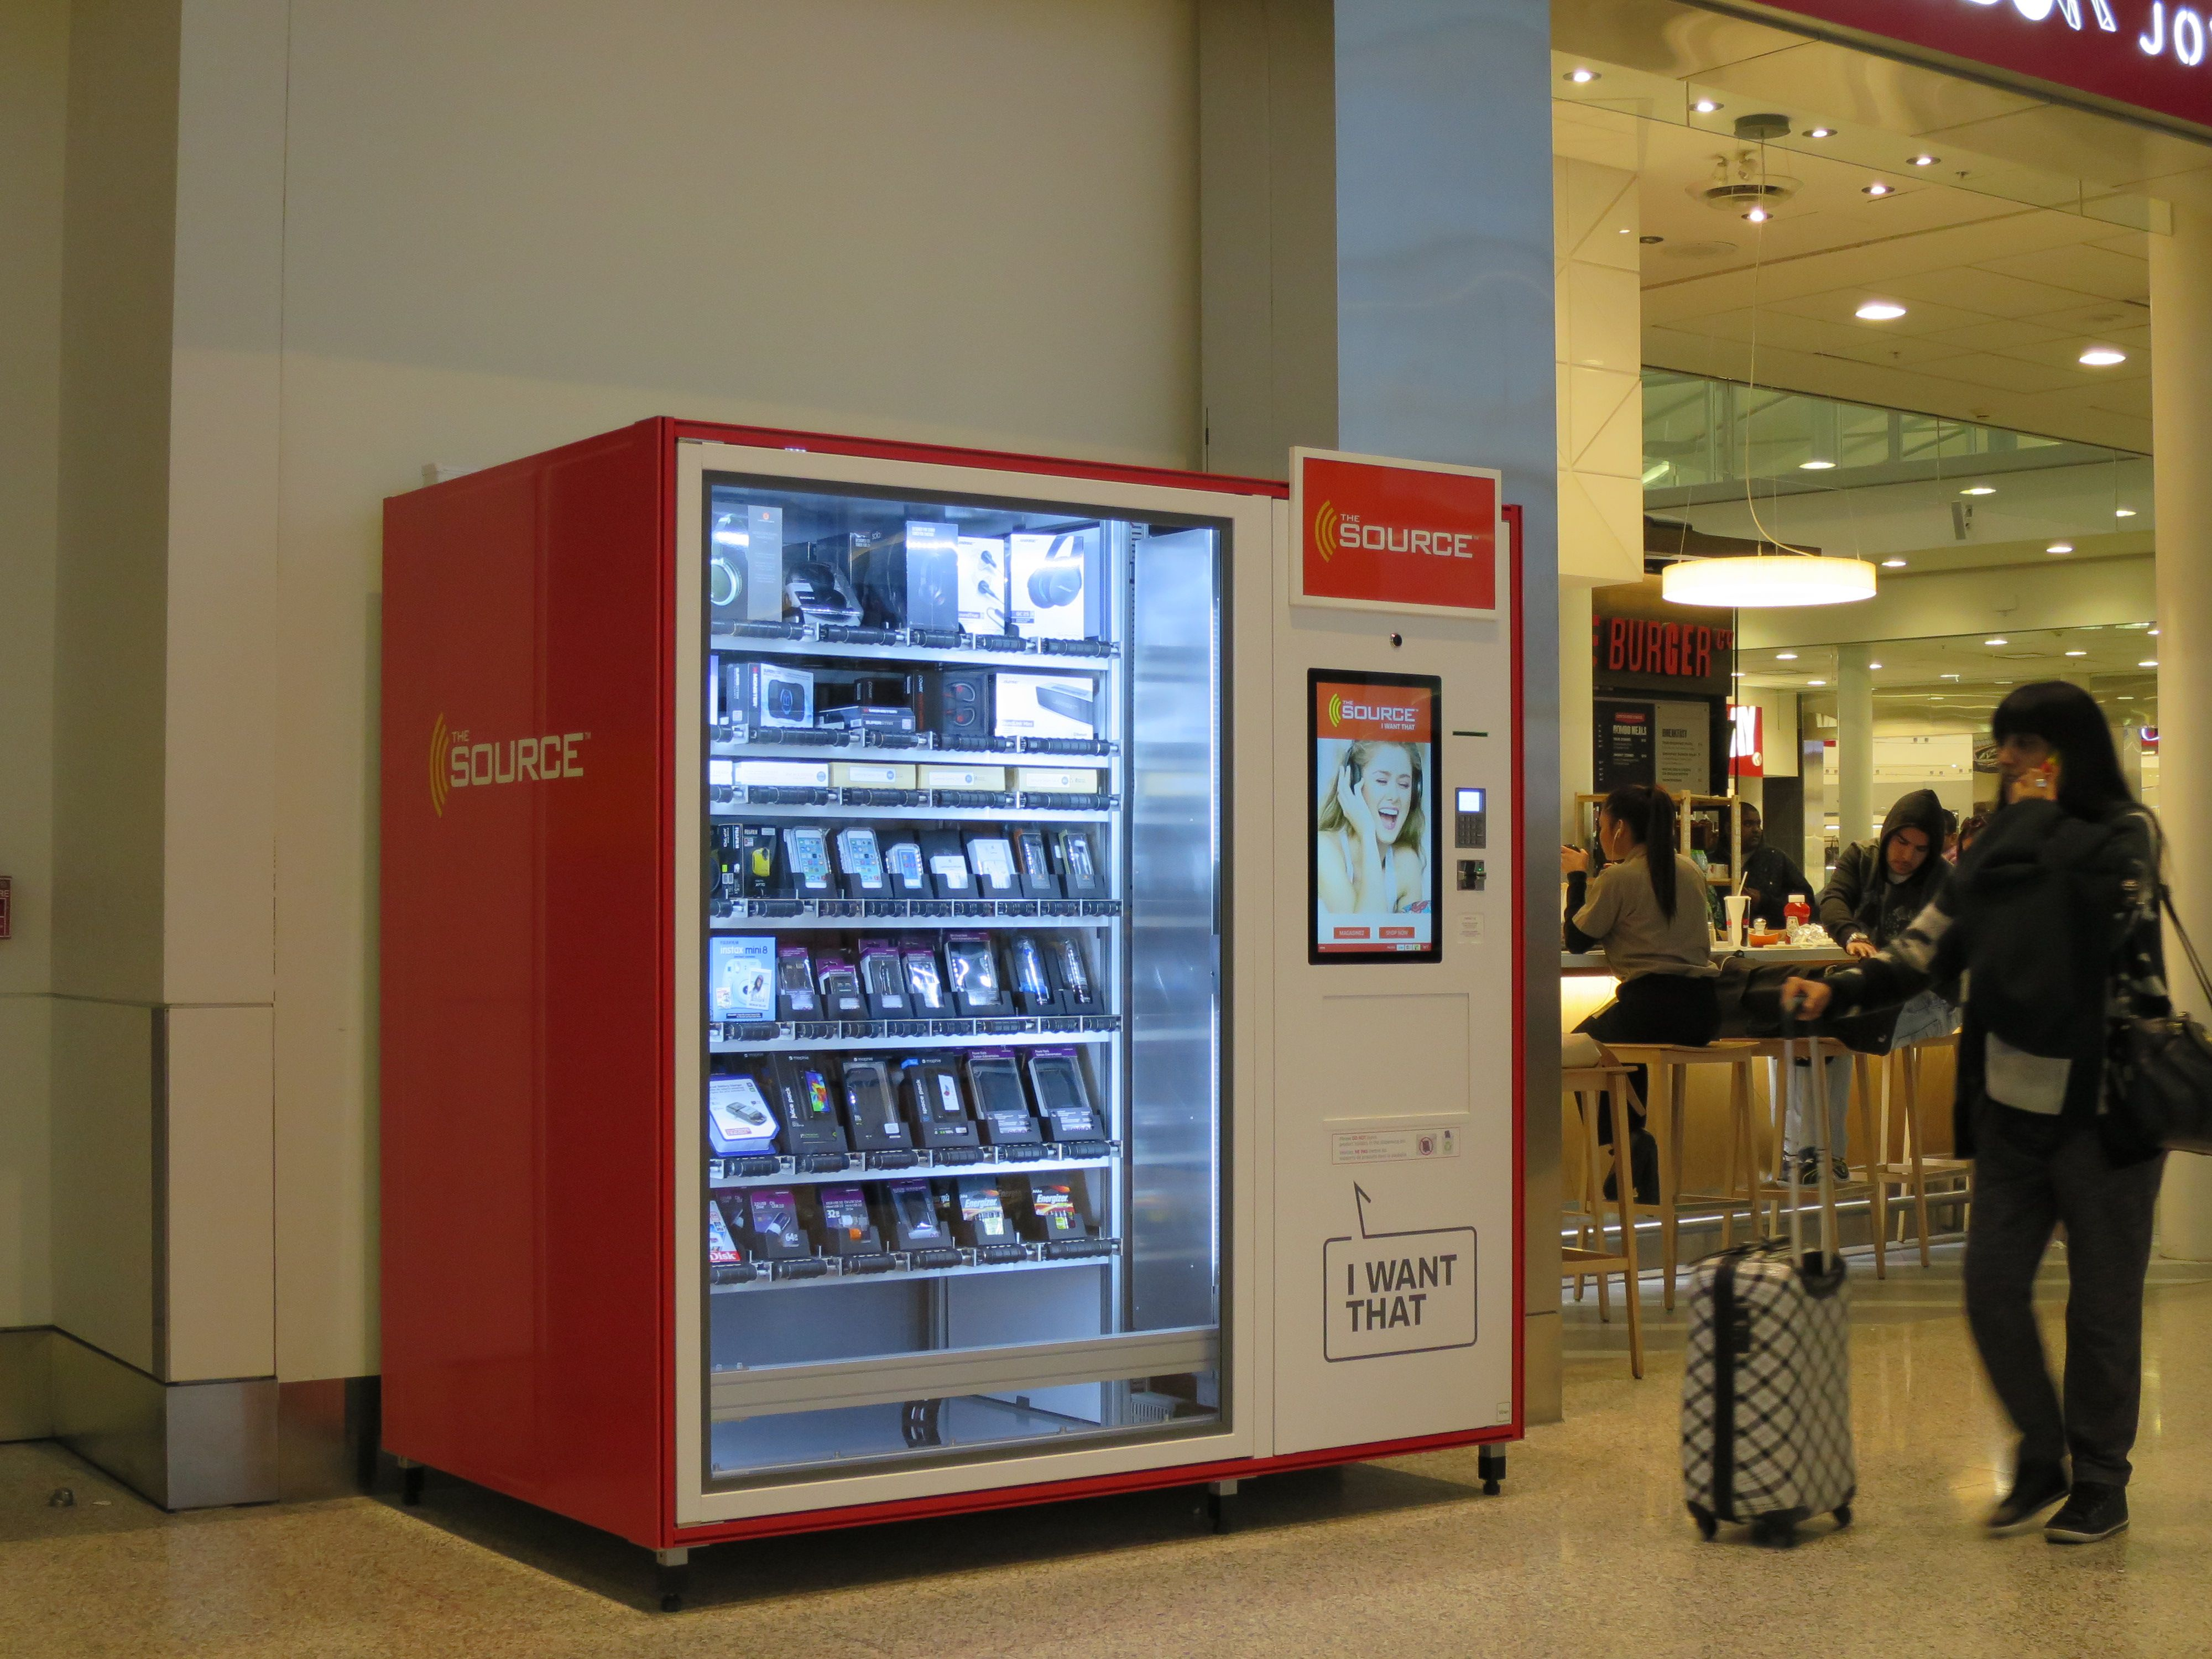 The Source replaces The Best Buy machines at Toronto